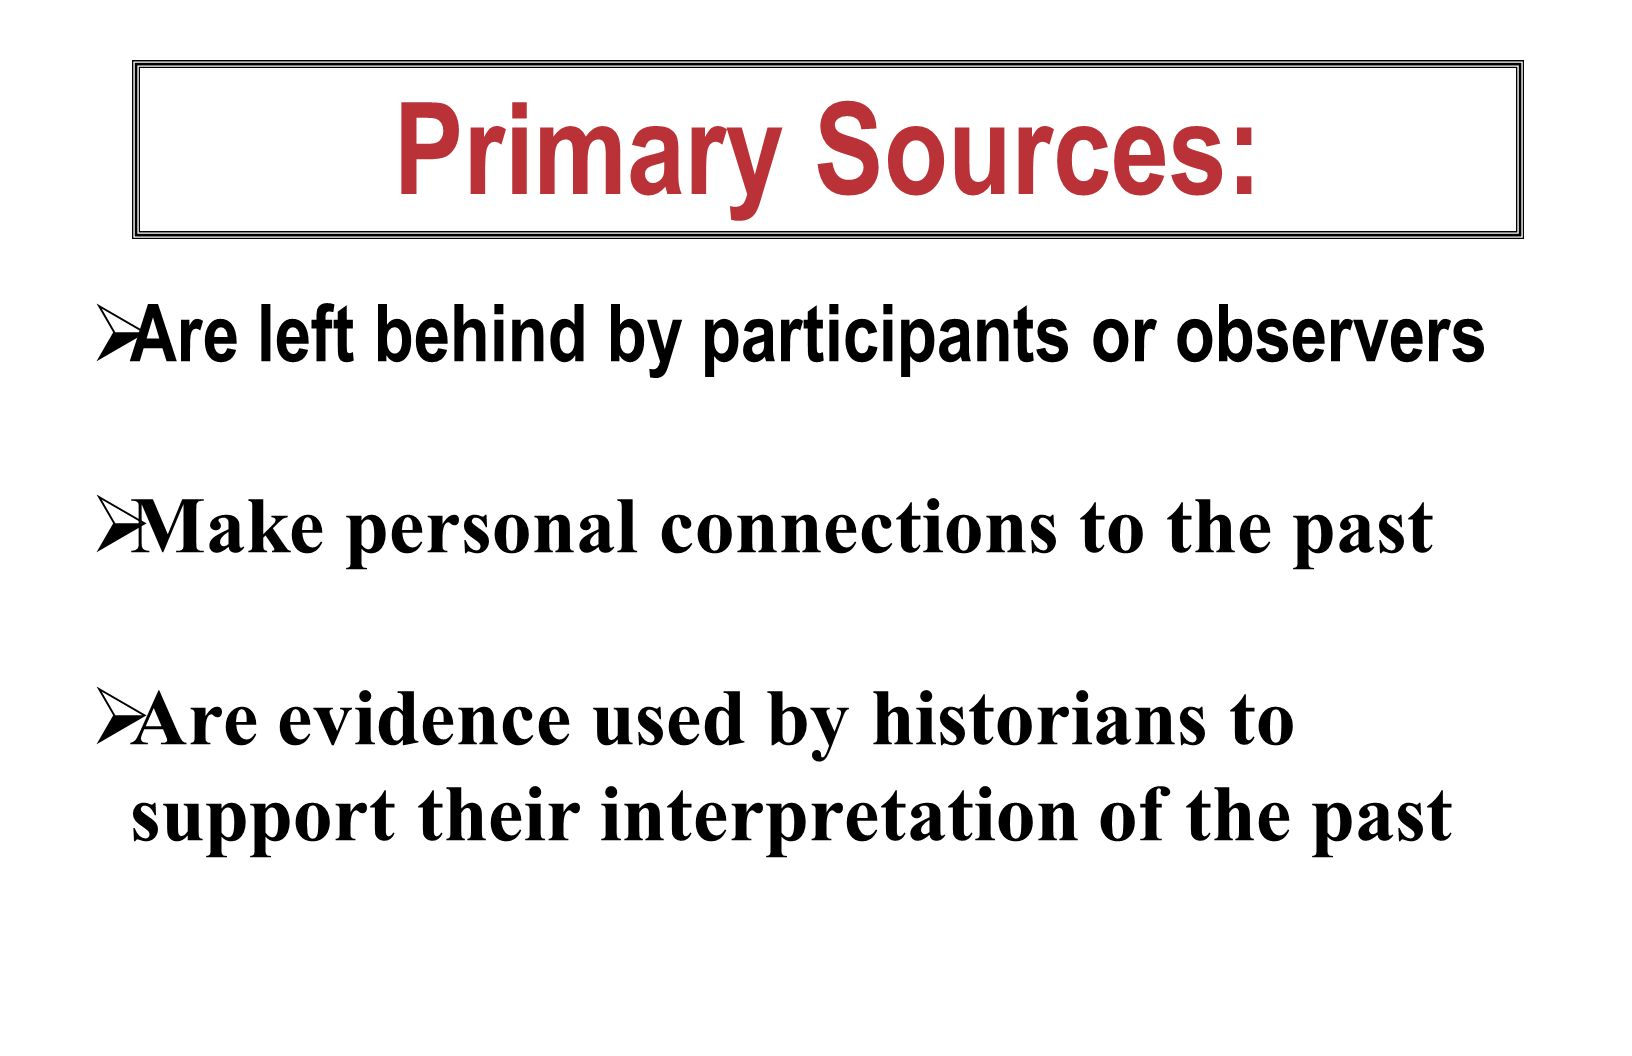 Primary Sources: Are left behind by participants or observers